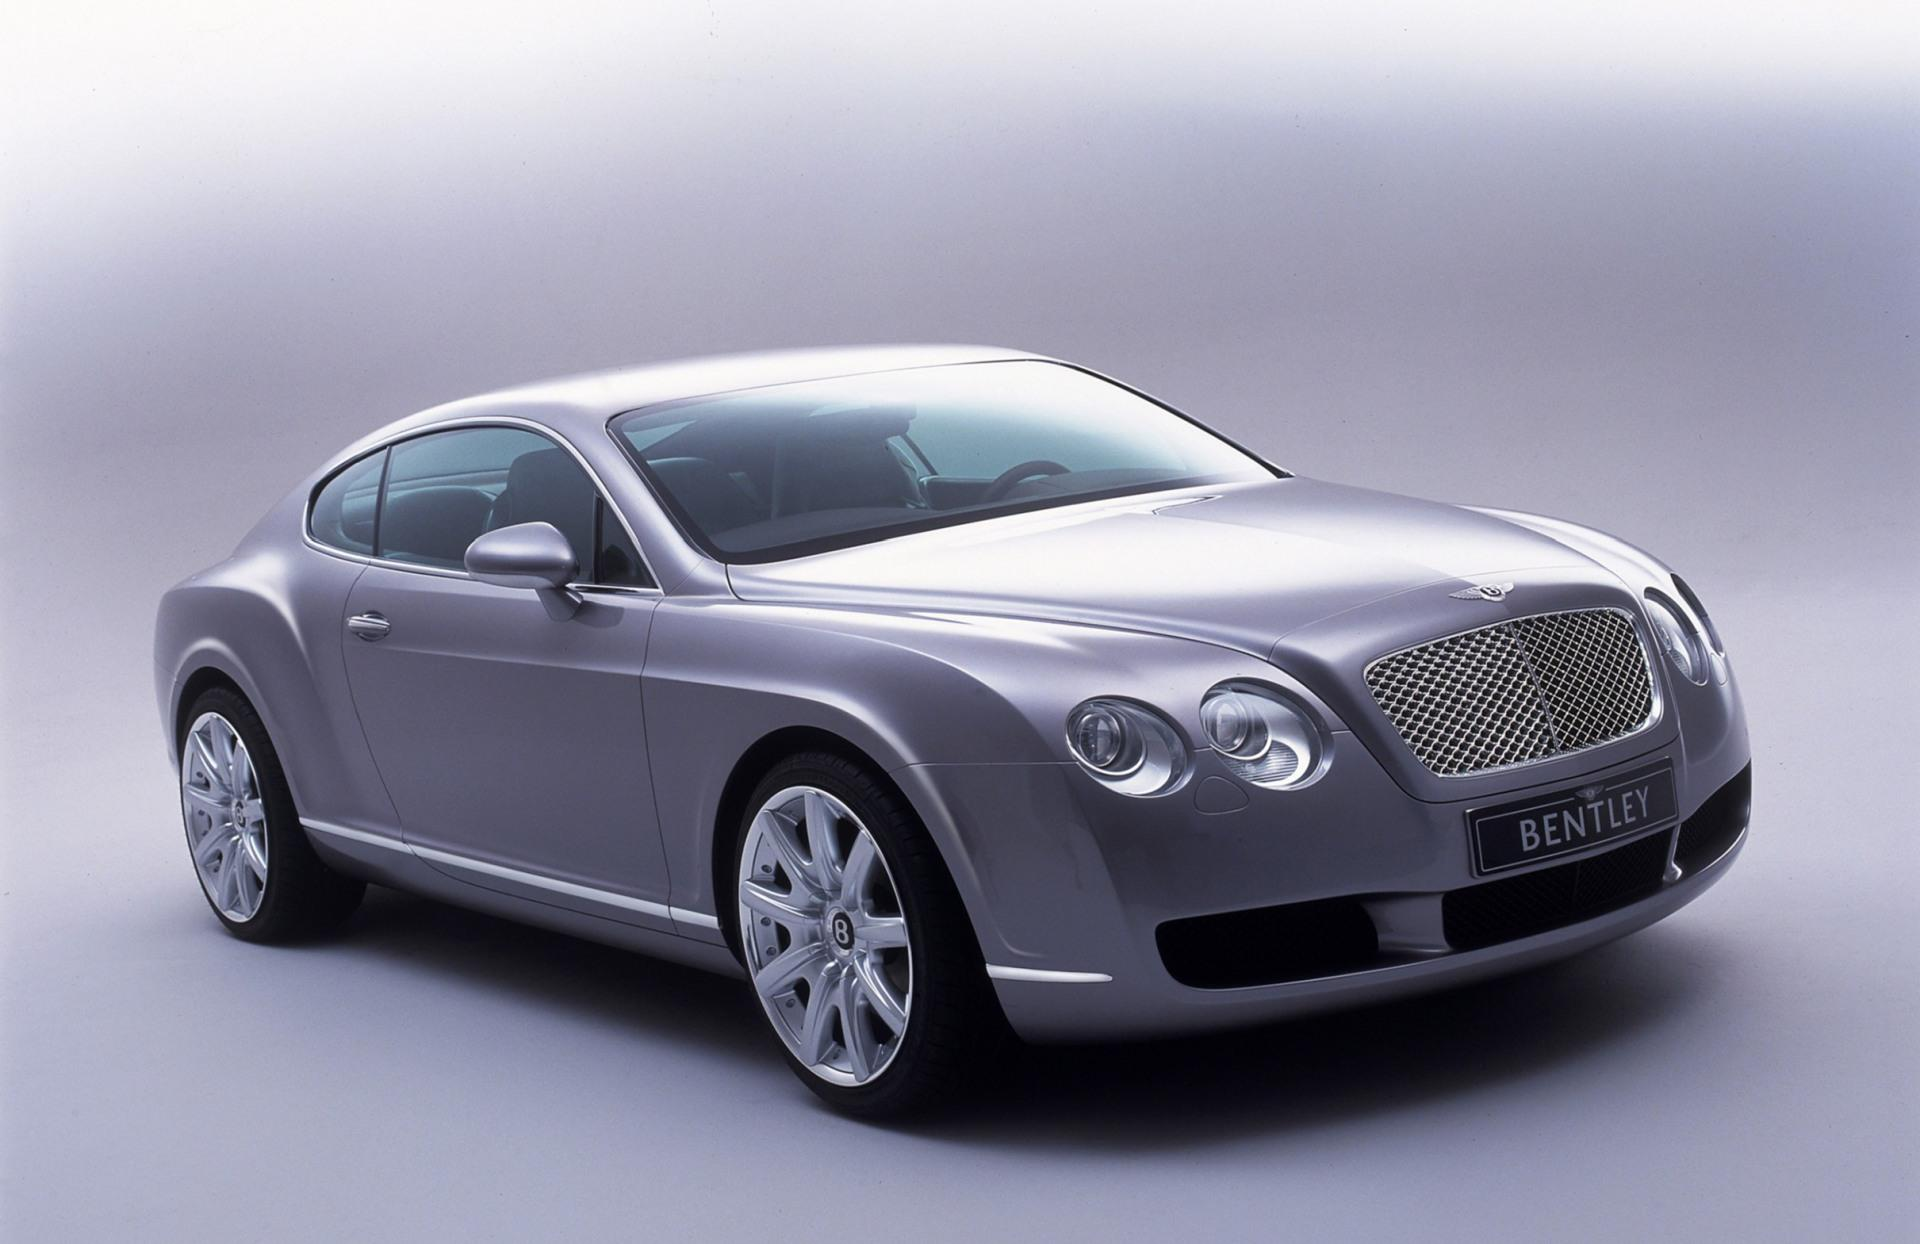 2009 Bentley Continental Gt News And Information